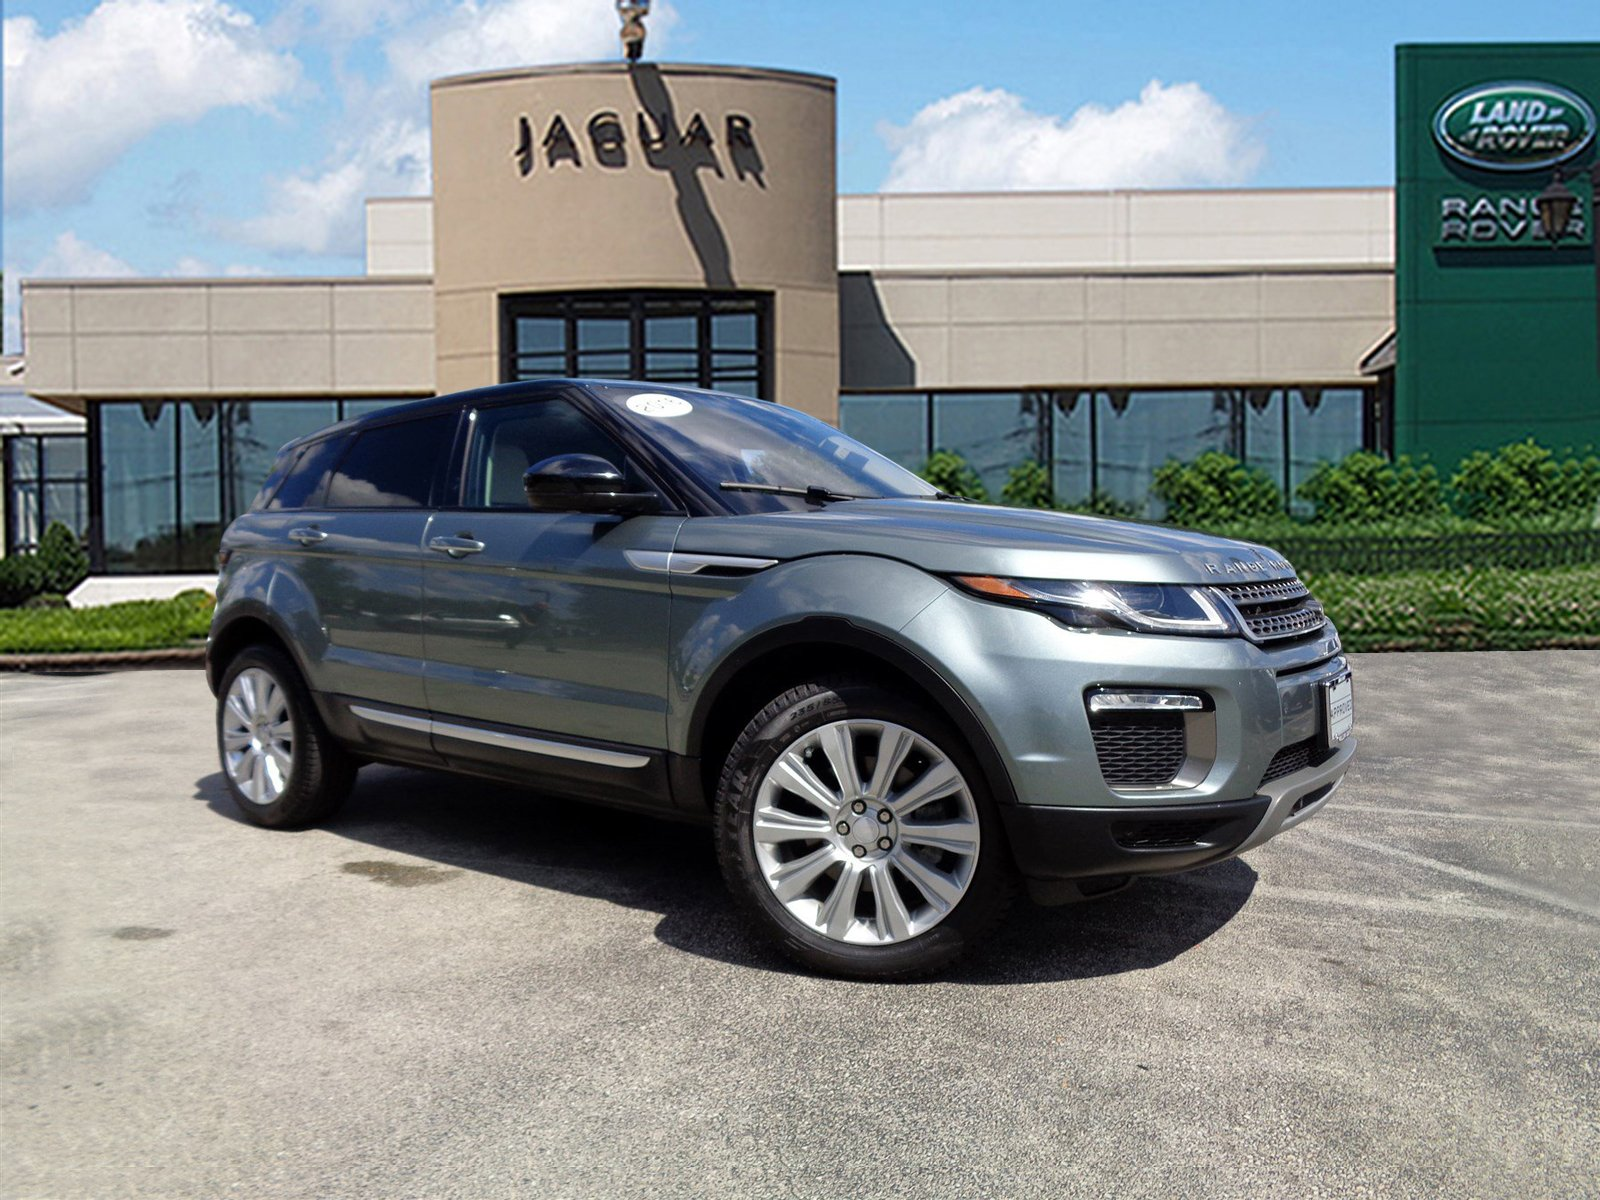 Certified Pre-Owned 2016 Land Rover Range Rover Evoque HSE With Navigation